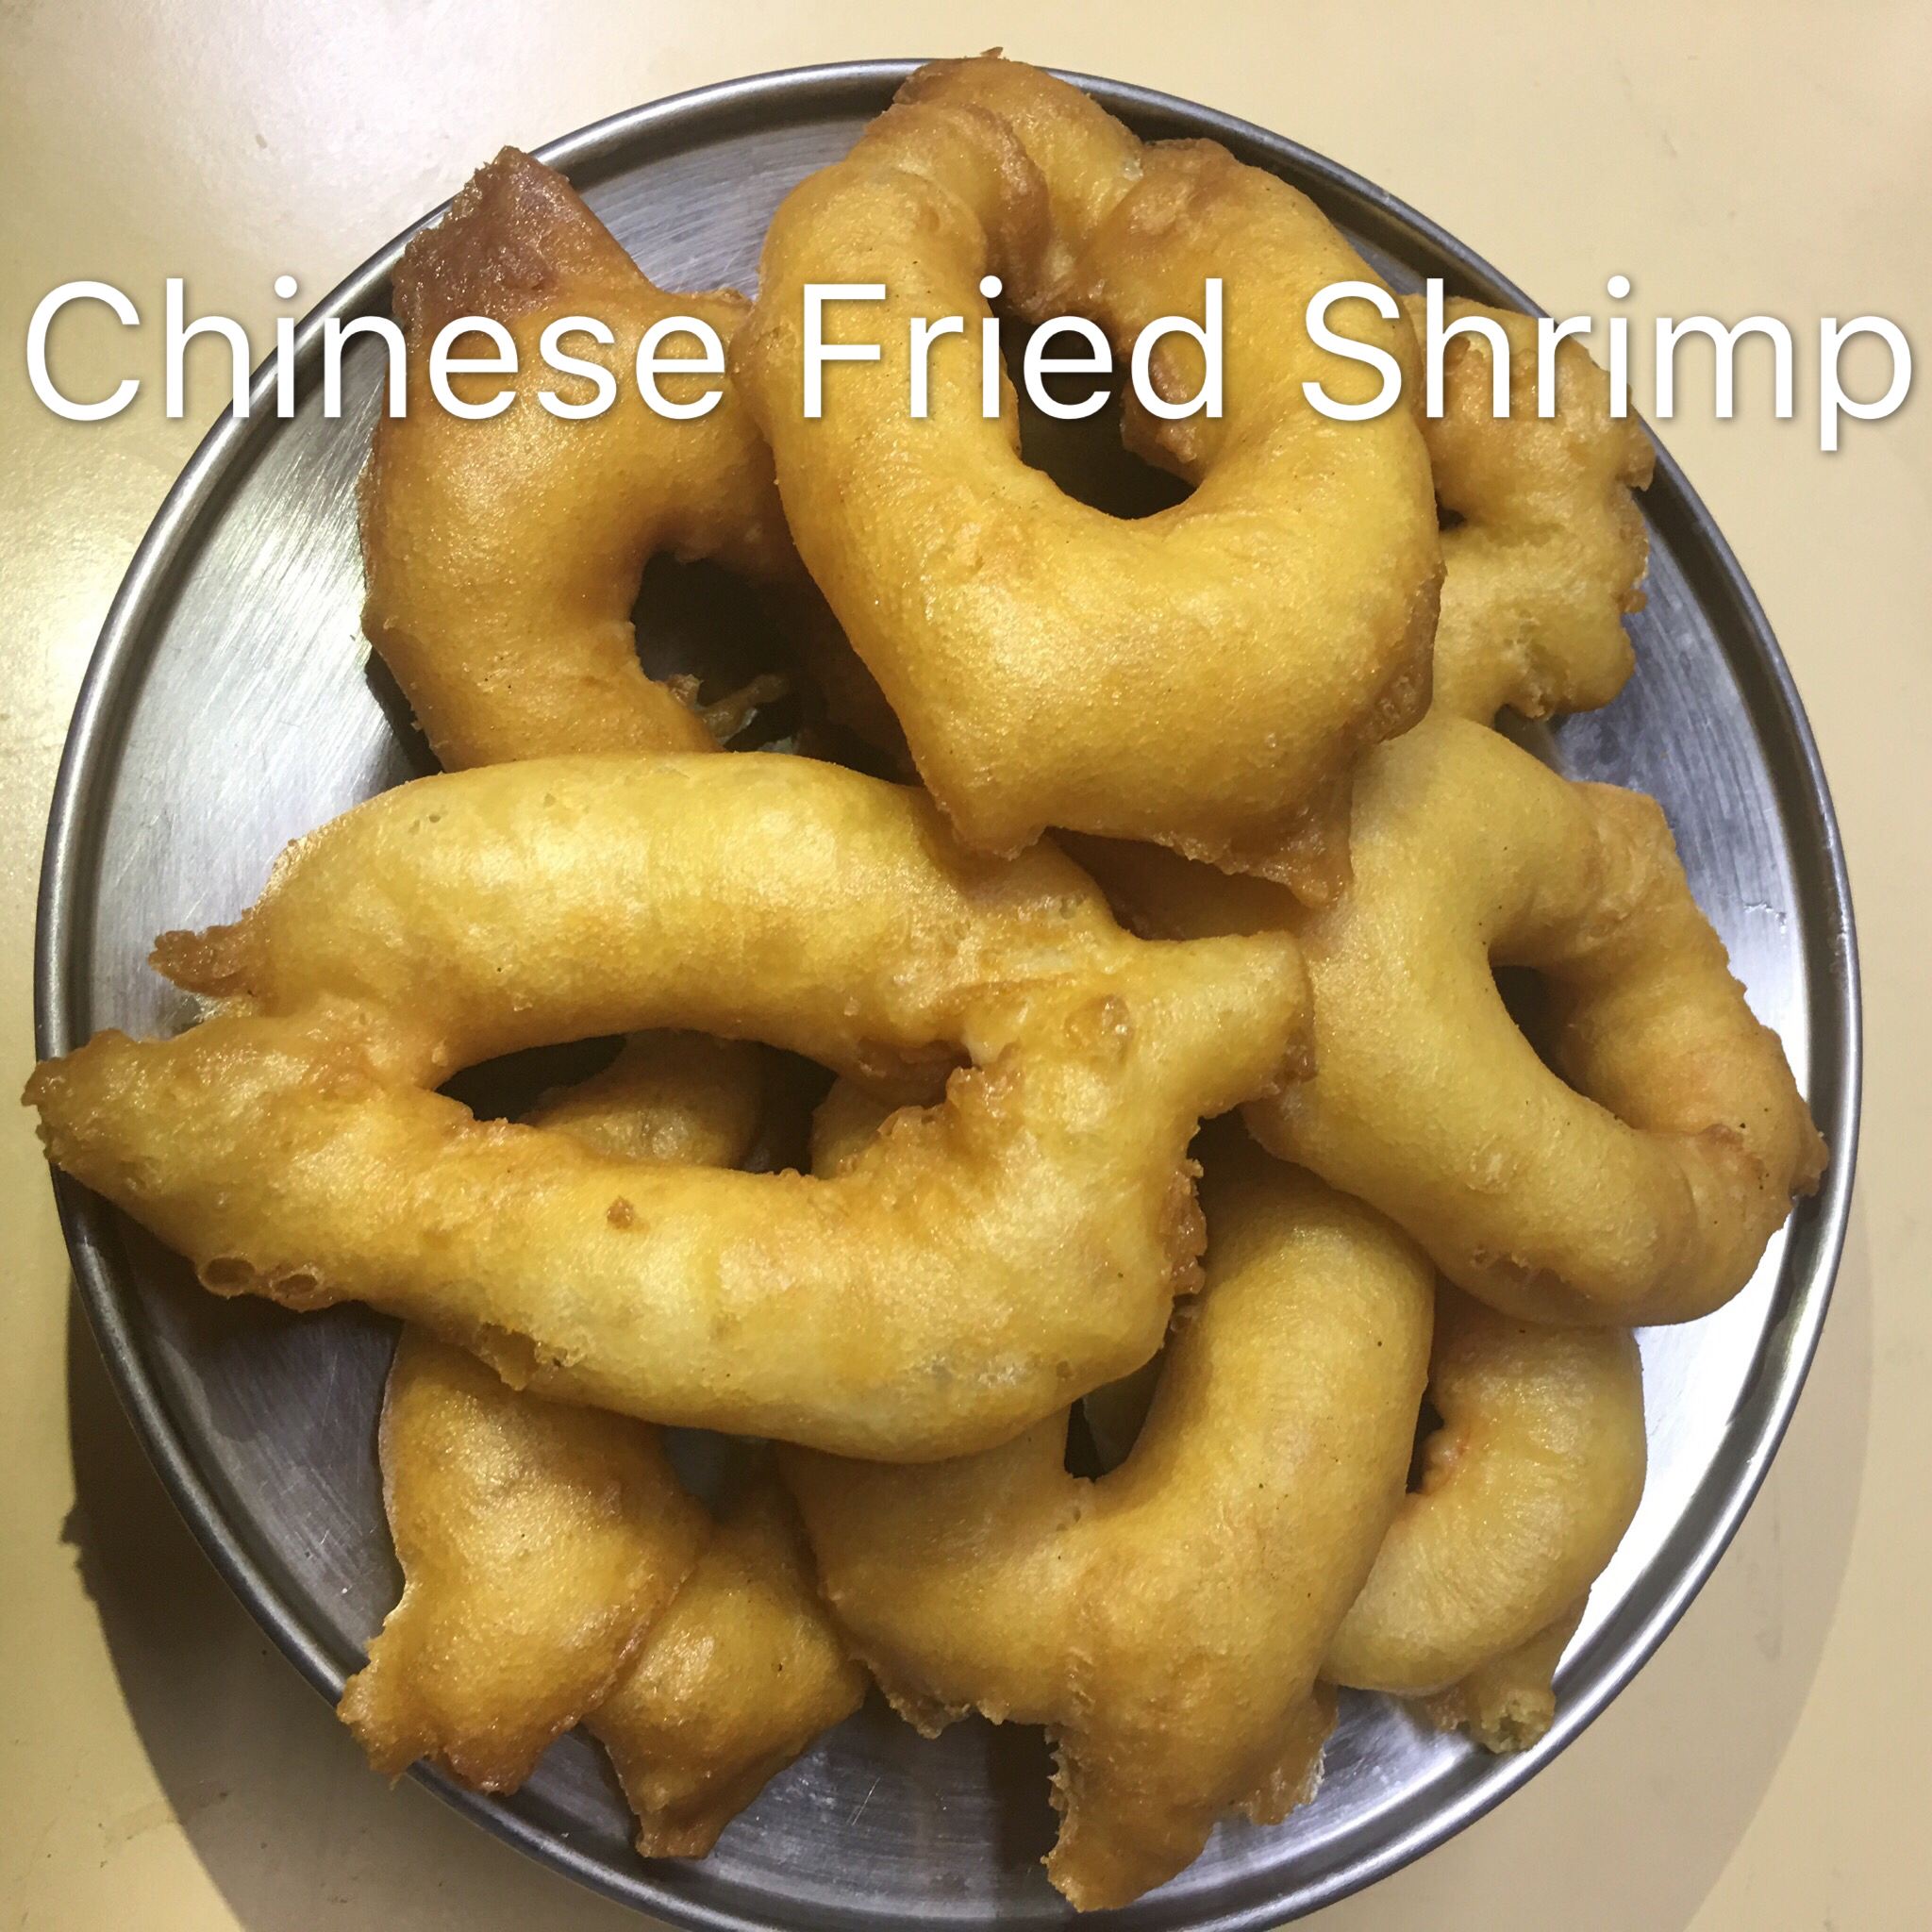 No. 22 - Chinese Fried Shrimp